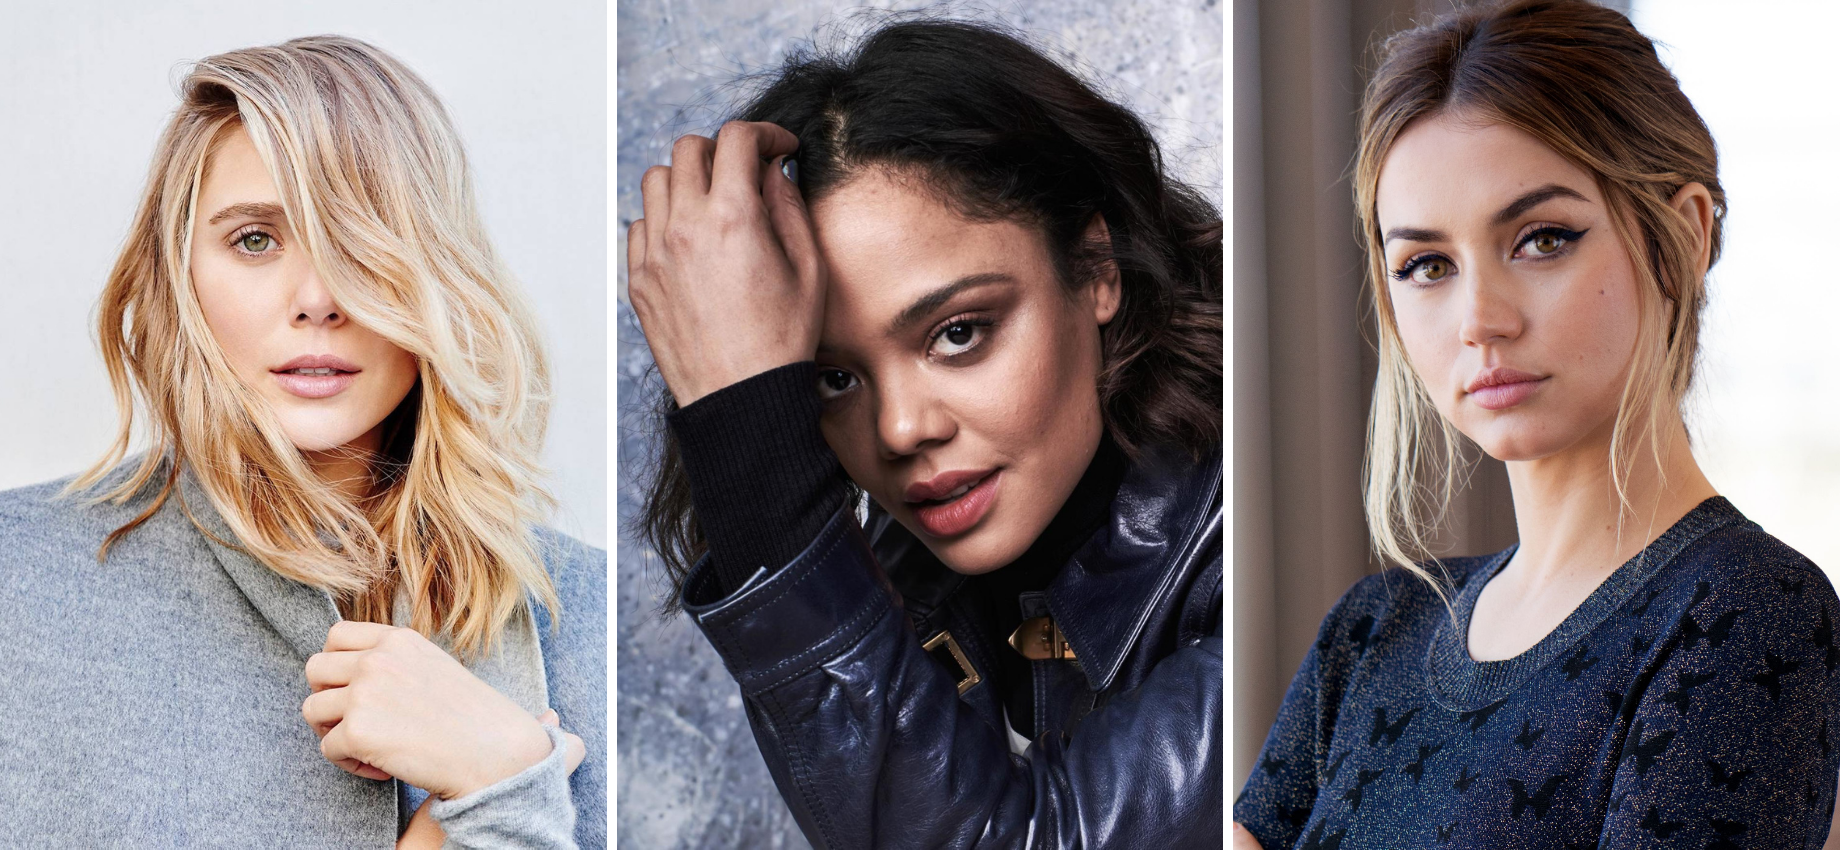 Casting the All-Female Cast of the 'Fast & Furious' Franchise Reboot